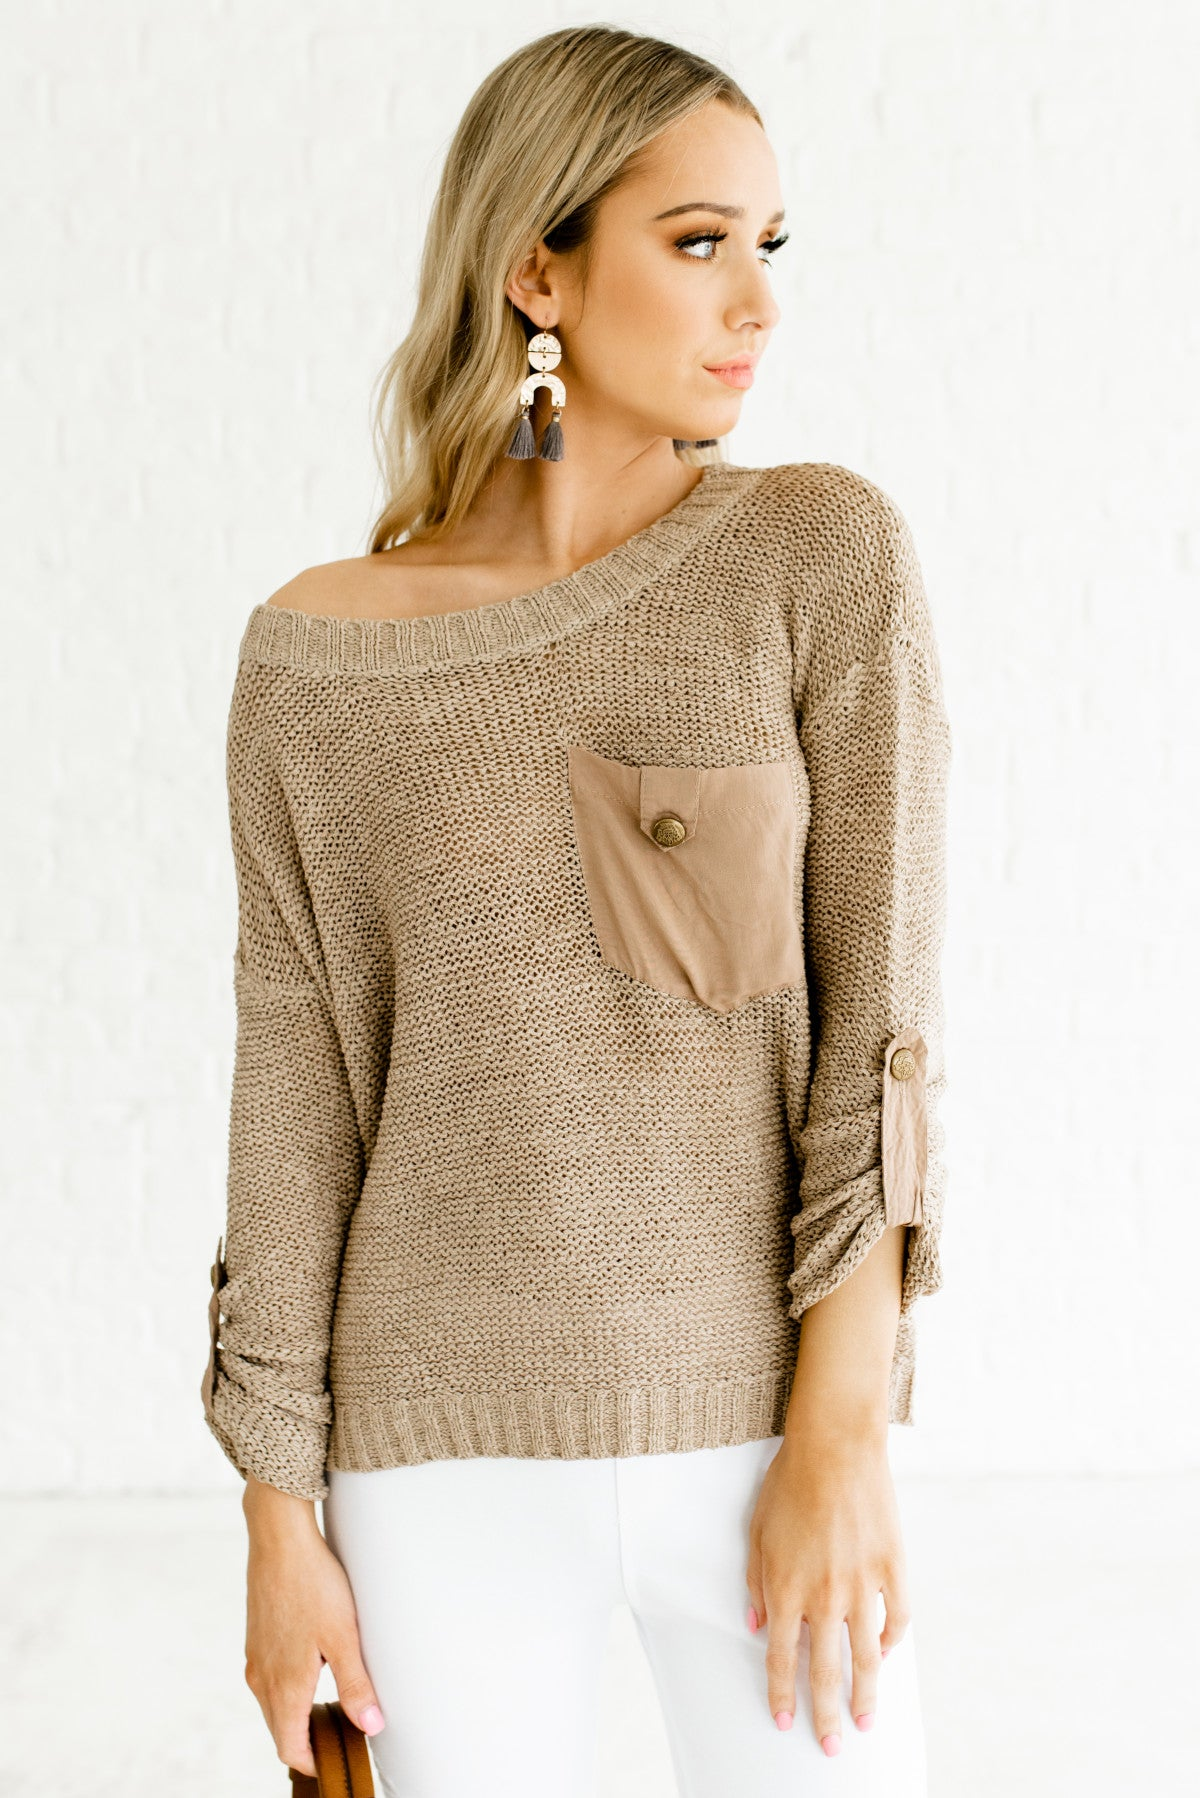 Cute as a Button Brown Knit Sweater